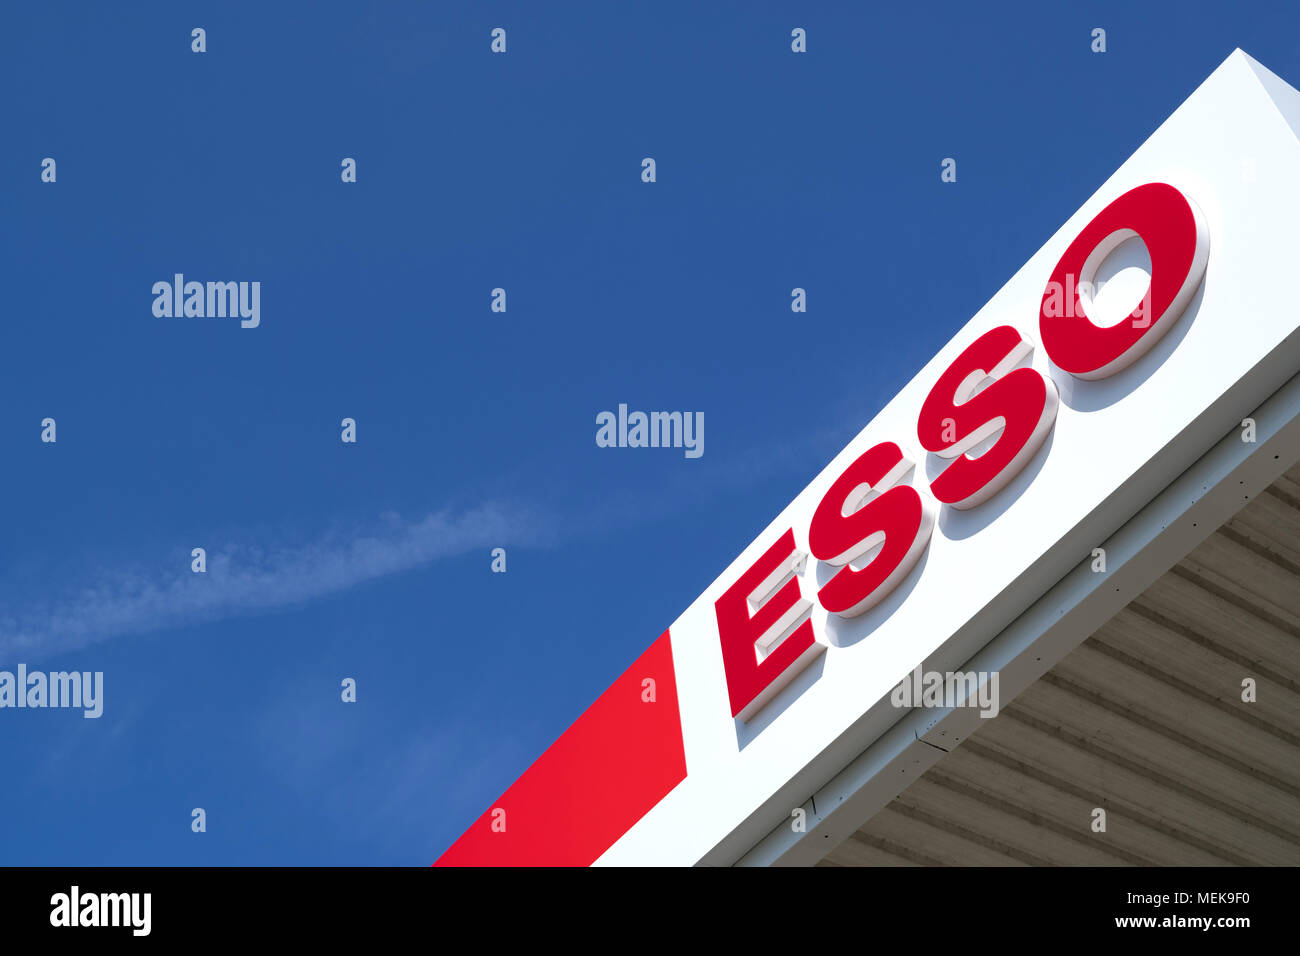 Esso sign at gas station against blue sky. Esso is ExxonMobil's primary gasoline brand worldwide. - Stock Image